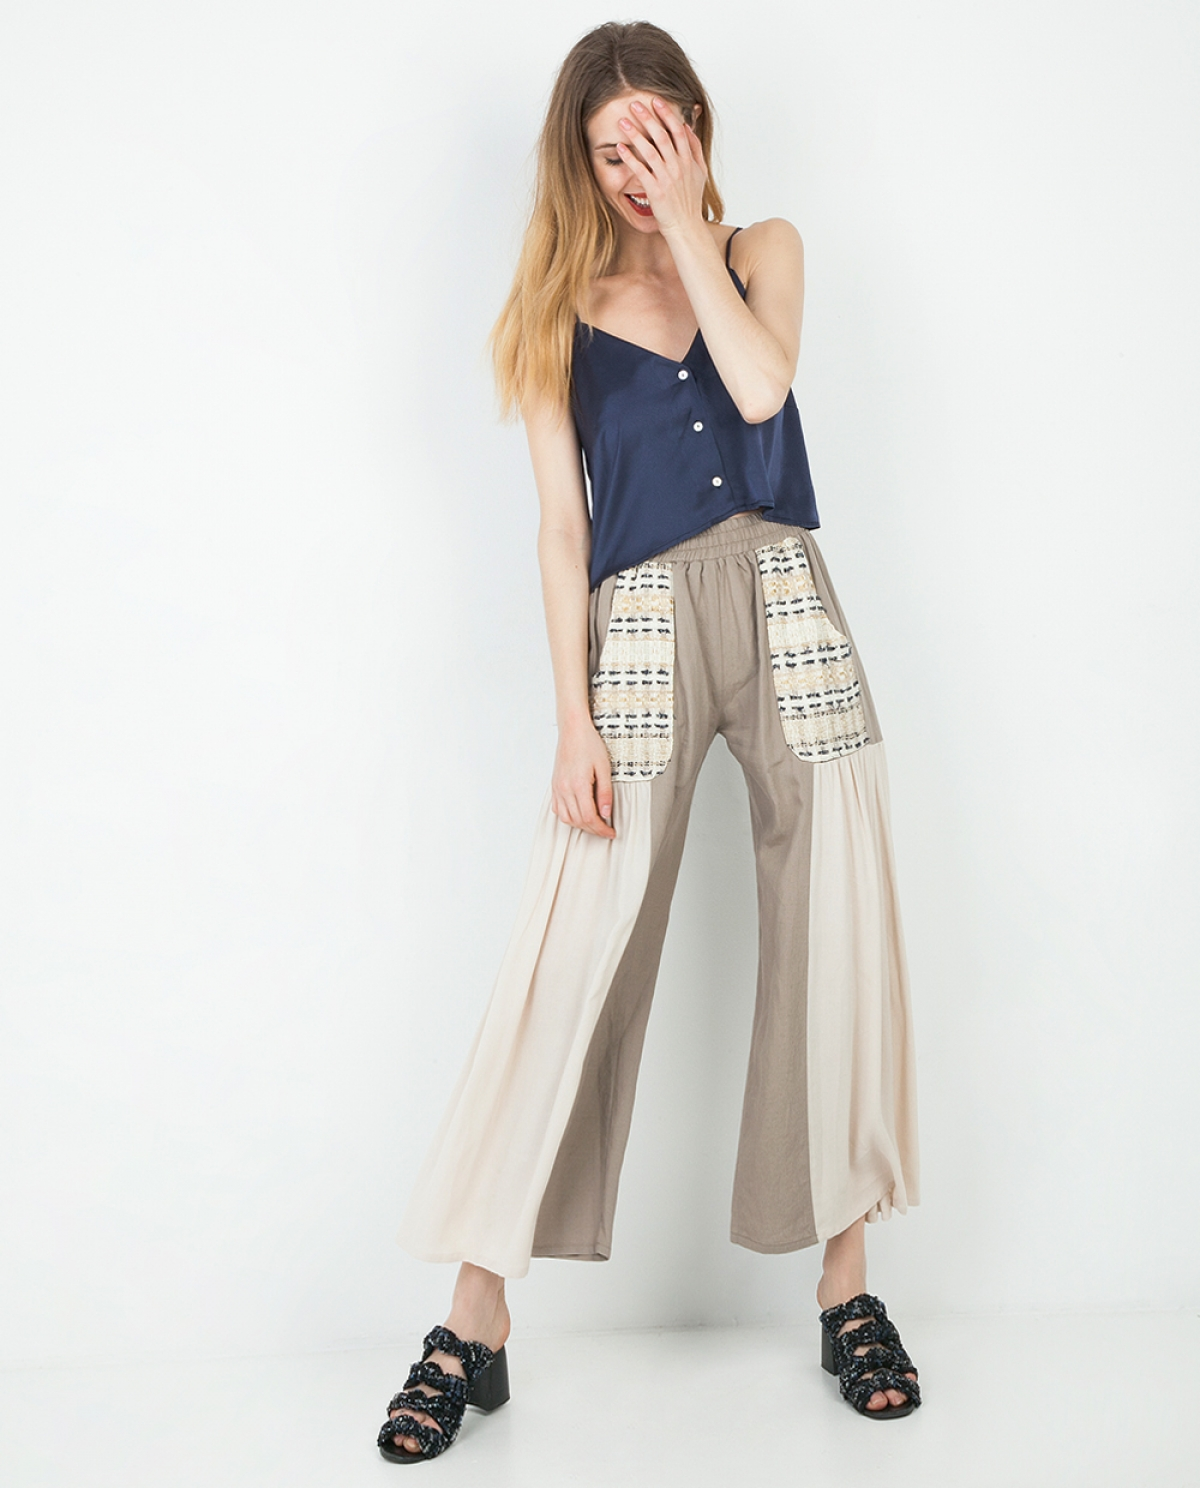 Sunbeam Nude Pant